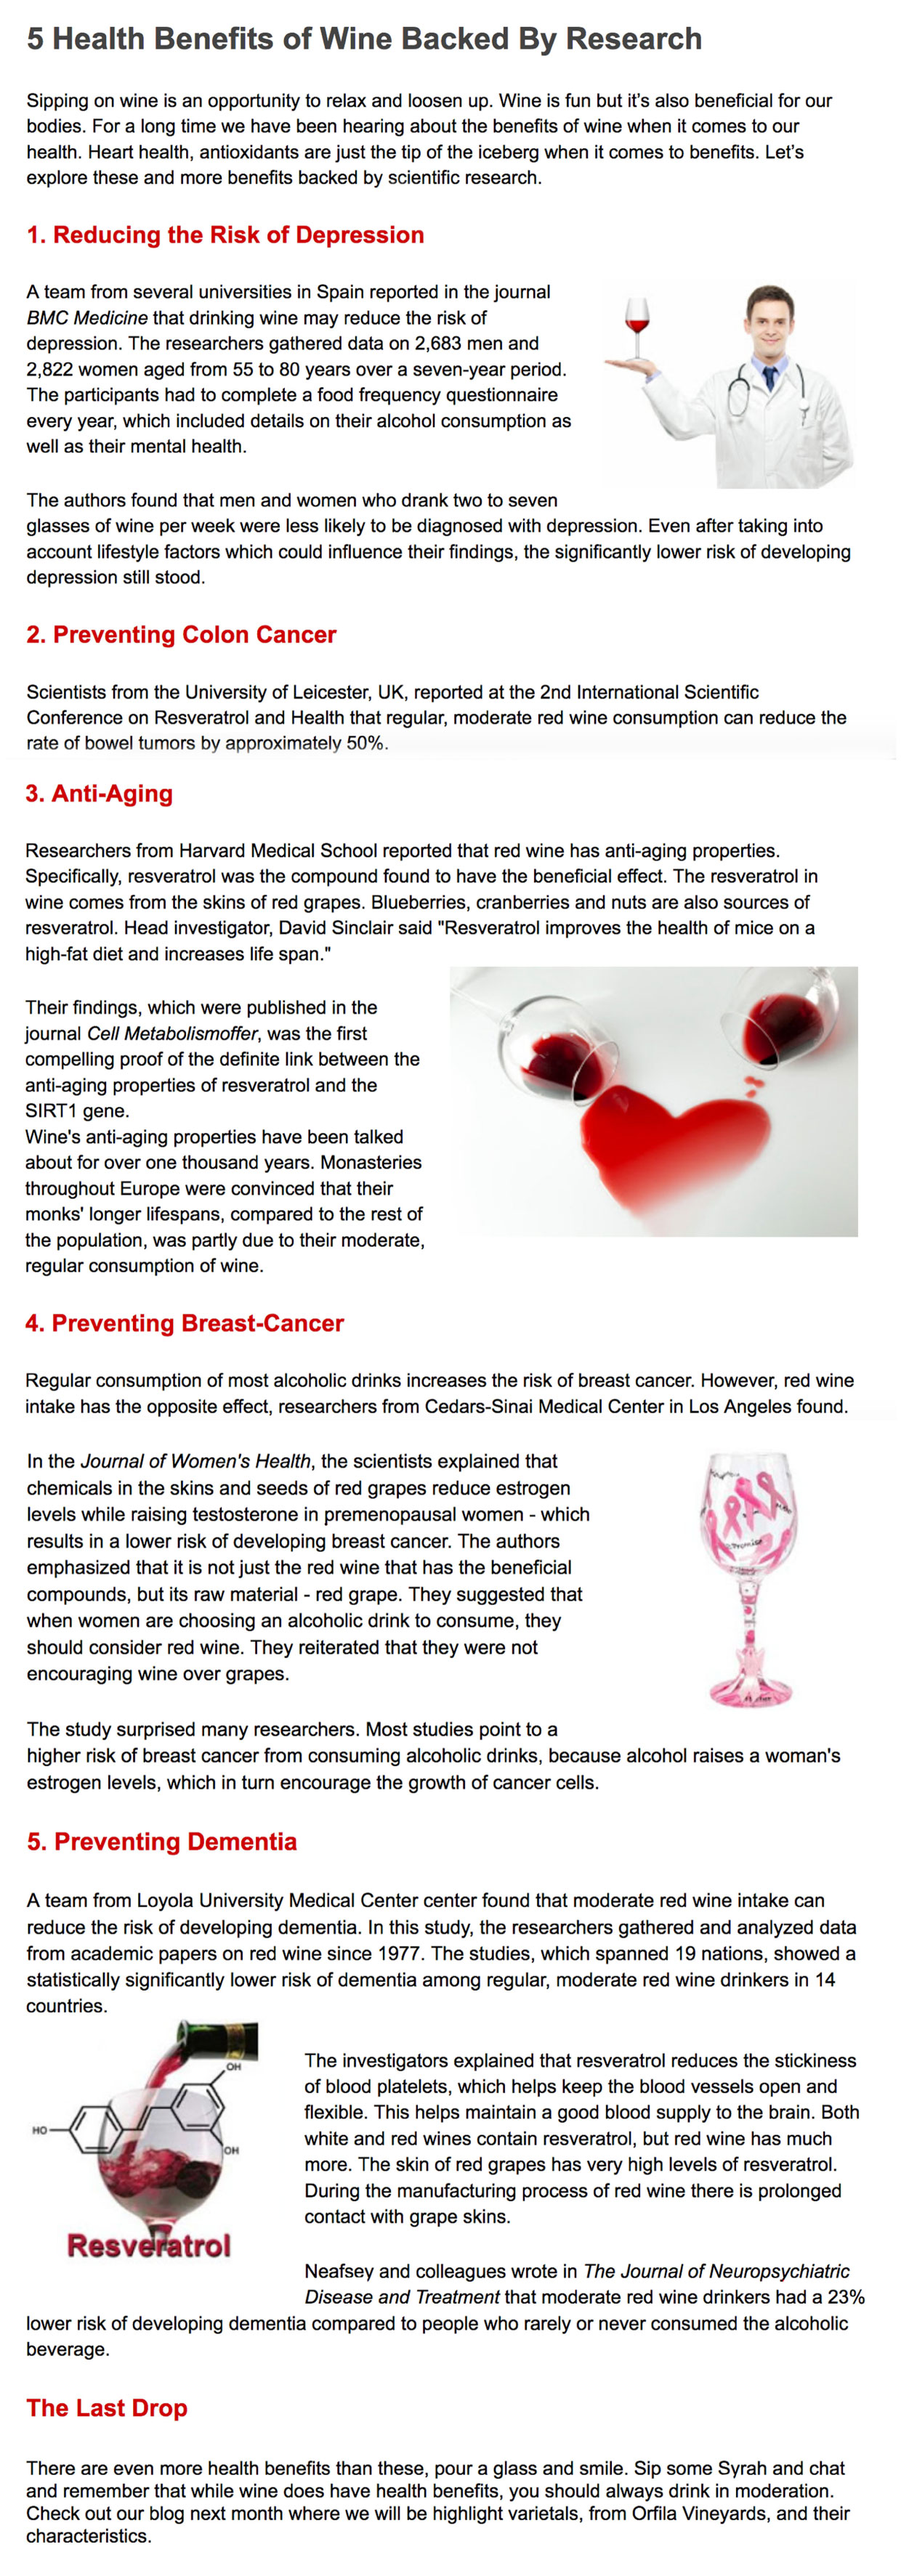 5-health-benefits-of-wine